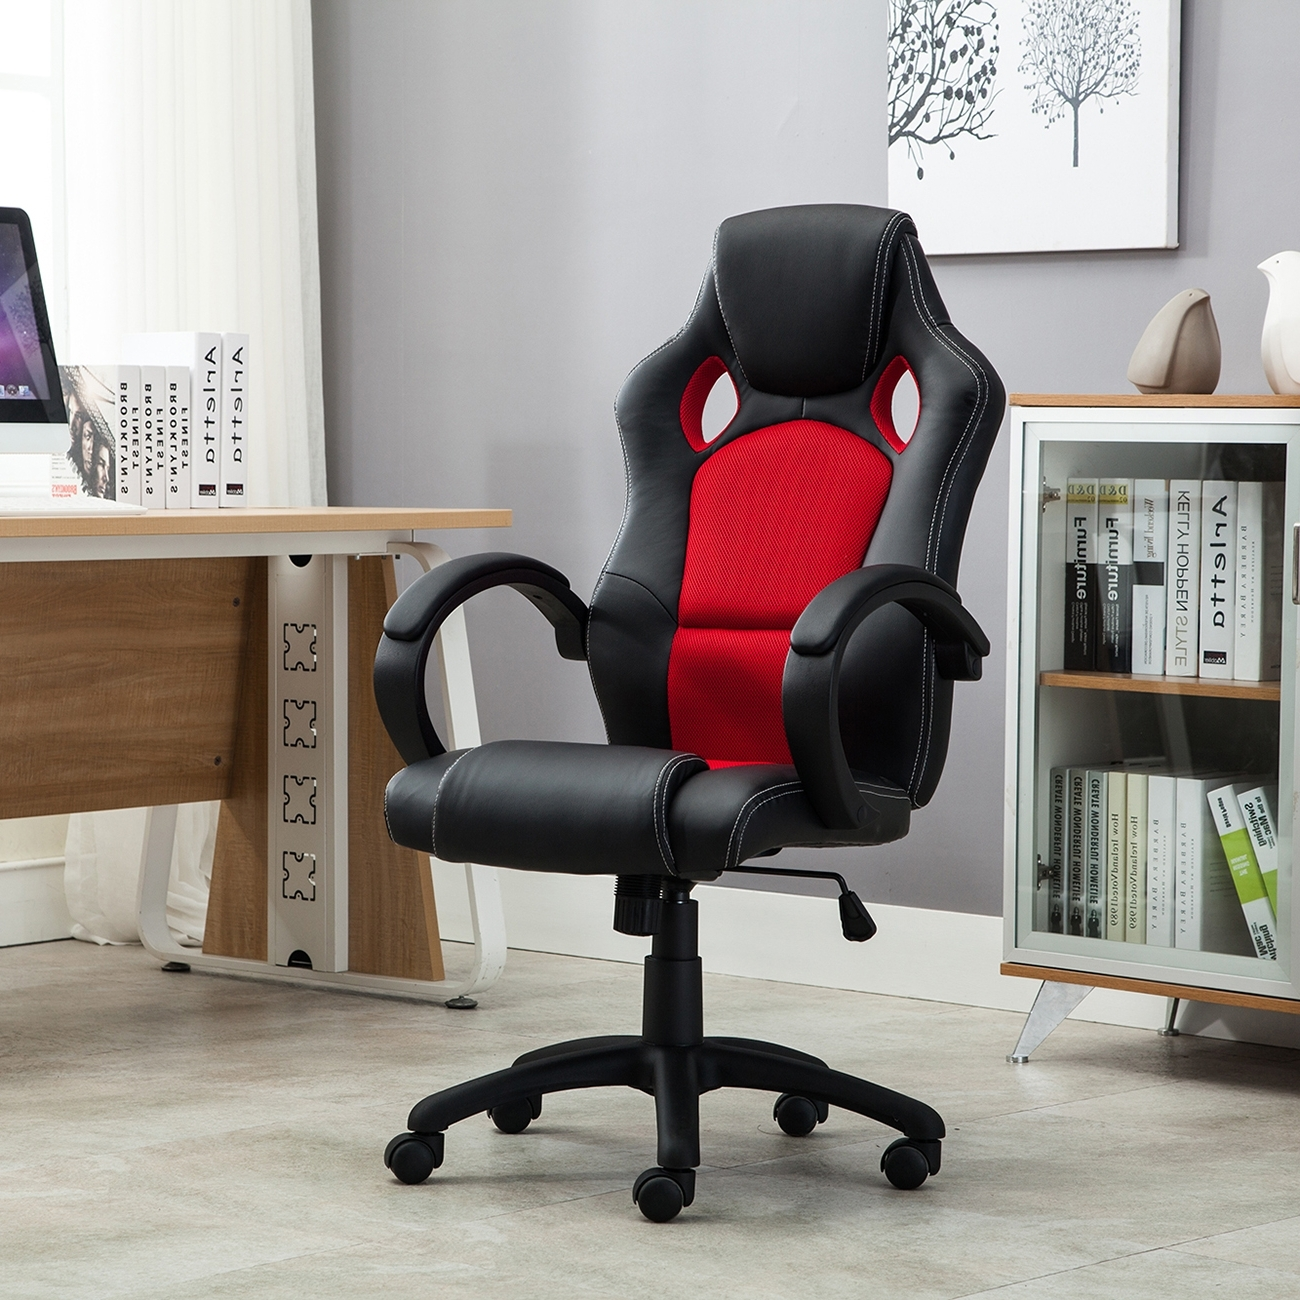 Executive Office Racing Chairs Regarding Well Liked High Back Race Car Style Bucket Seat Office Desk Chair Gaming (View 11 of 20)